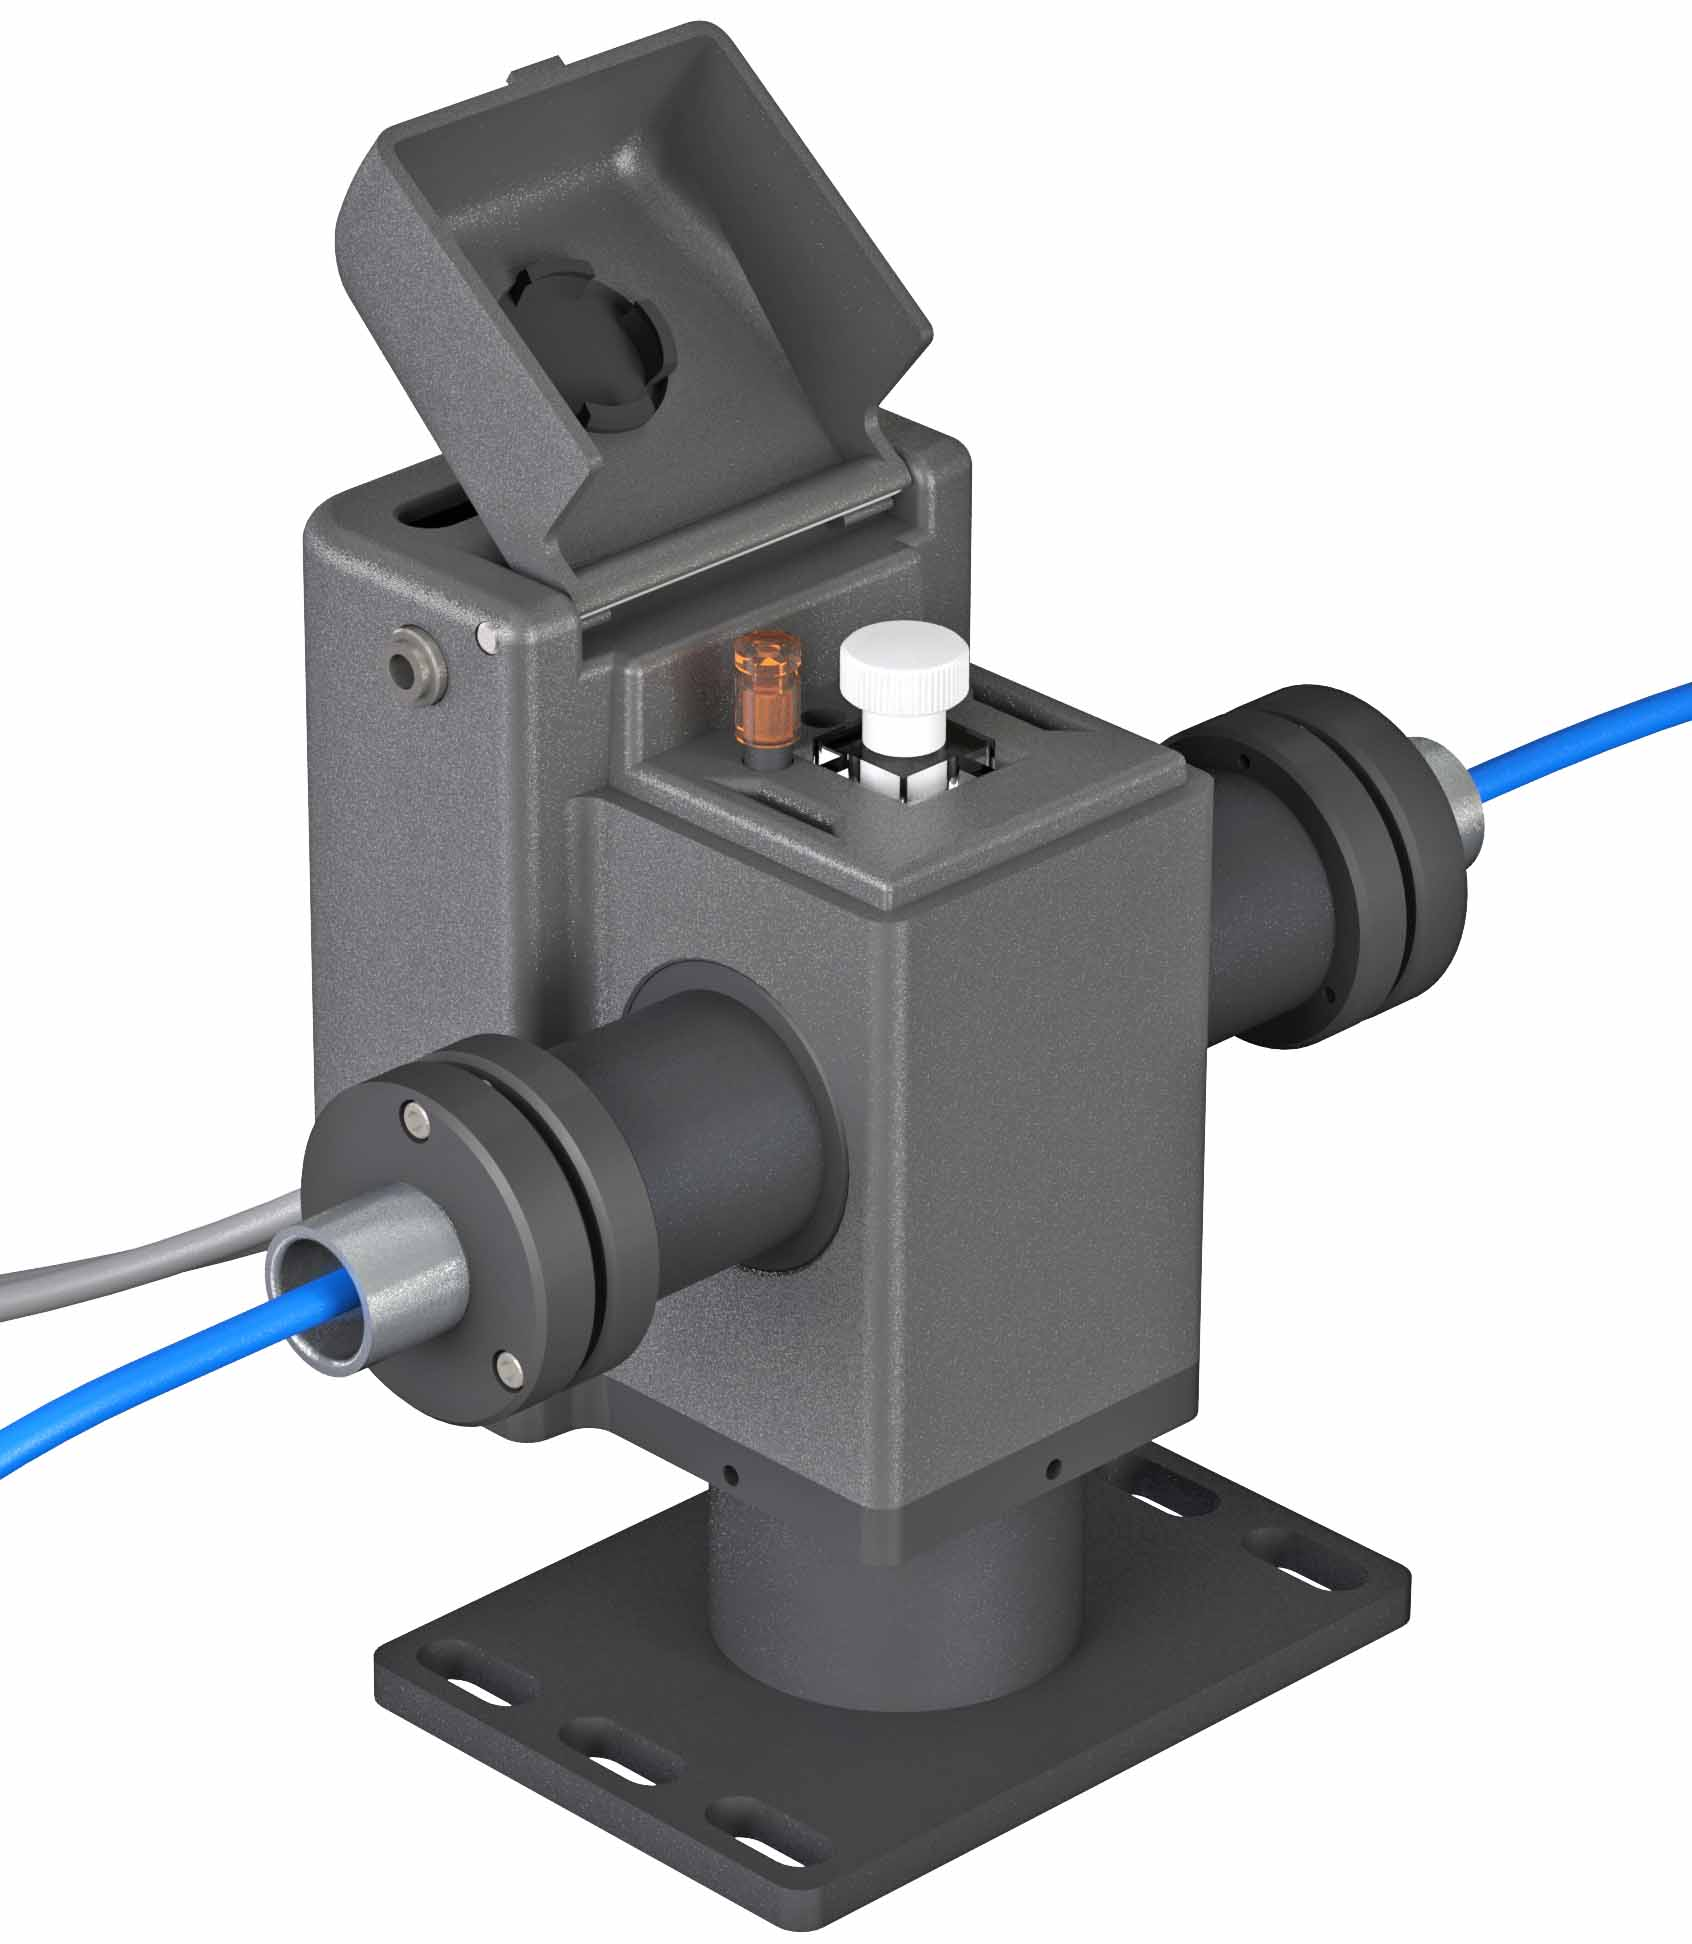 <strong>qX2/ABSKIT - Temperature-controlled cuvette holder adapted for fiber optics</strong>